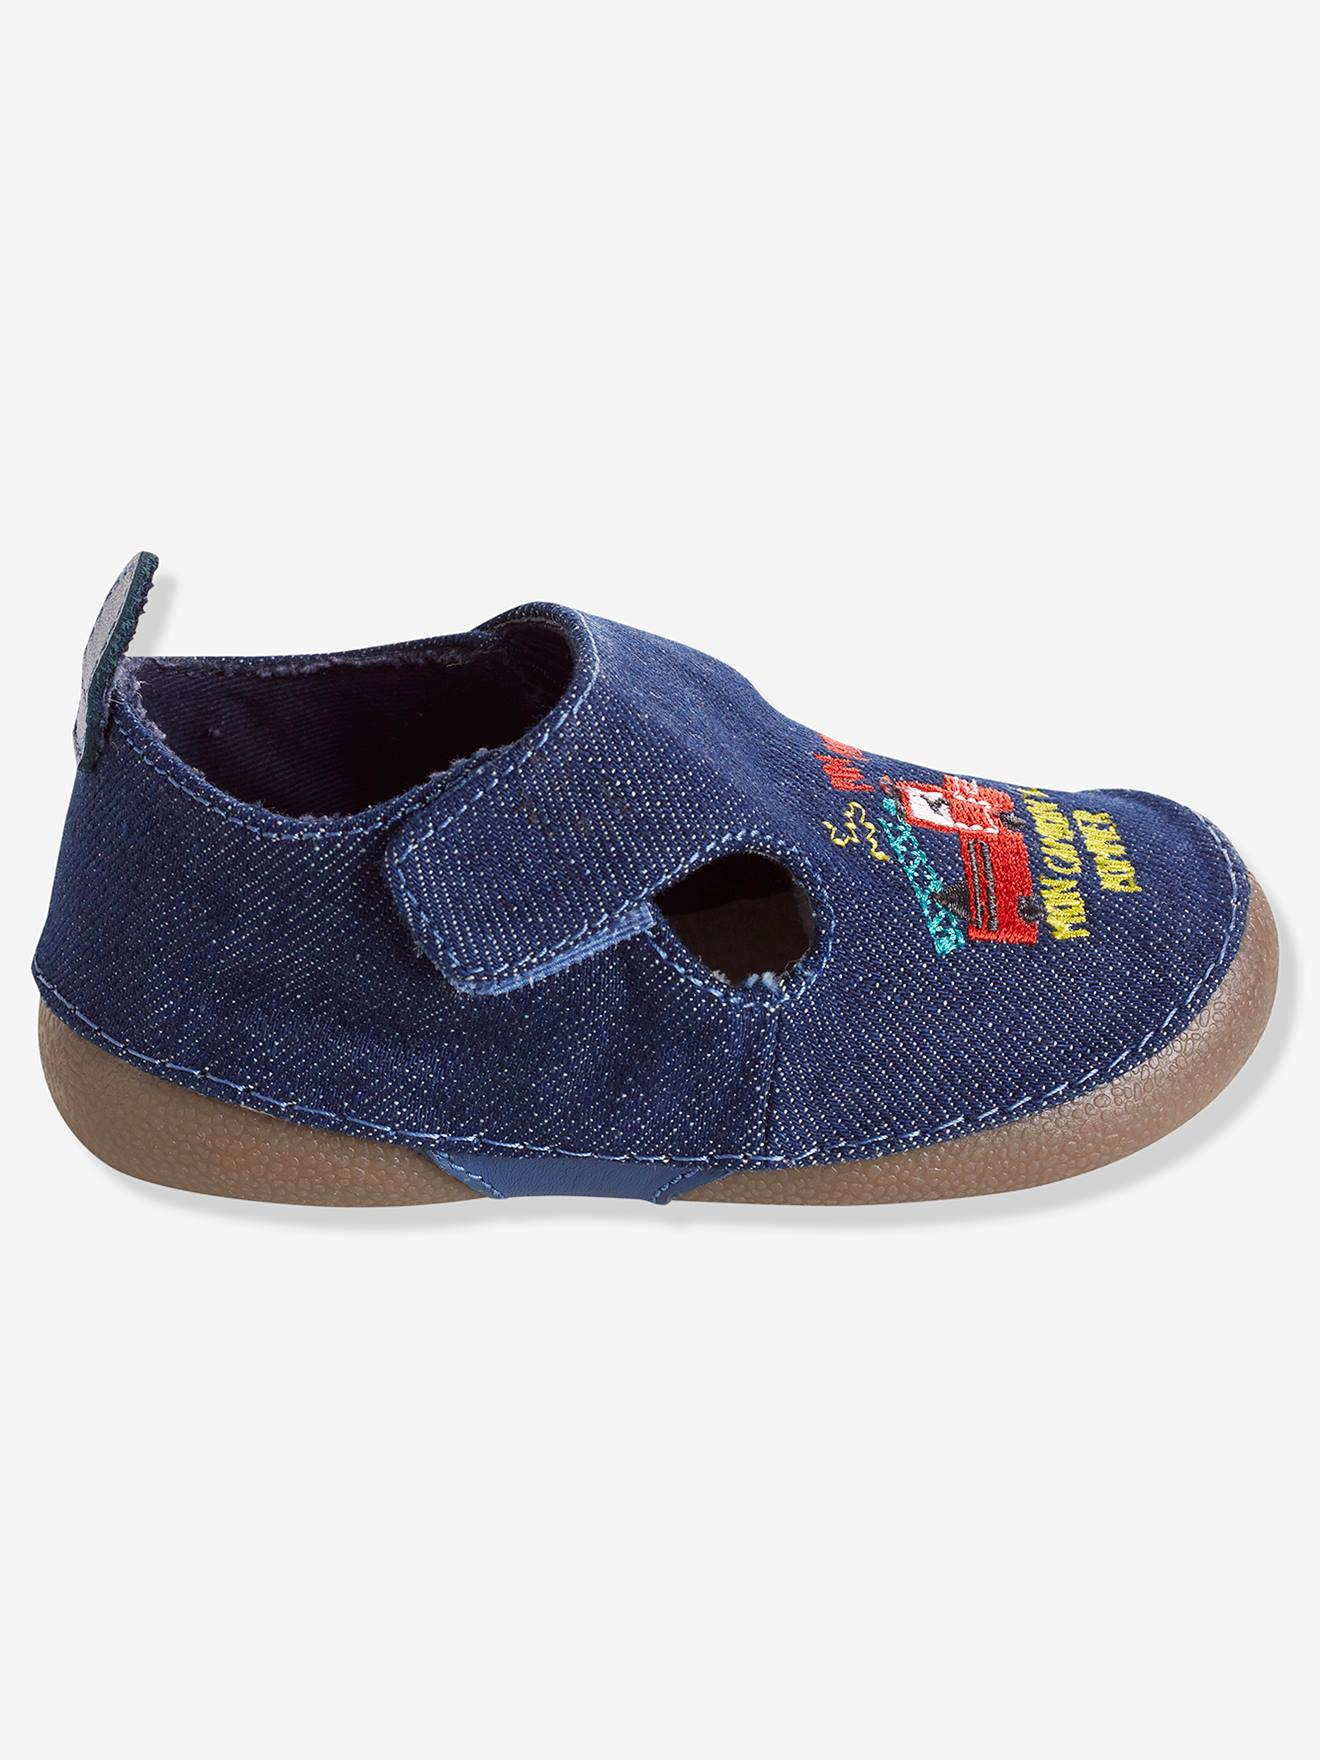 Baby Shoes in Denim Fabric Shoes